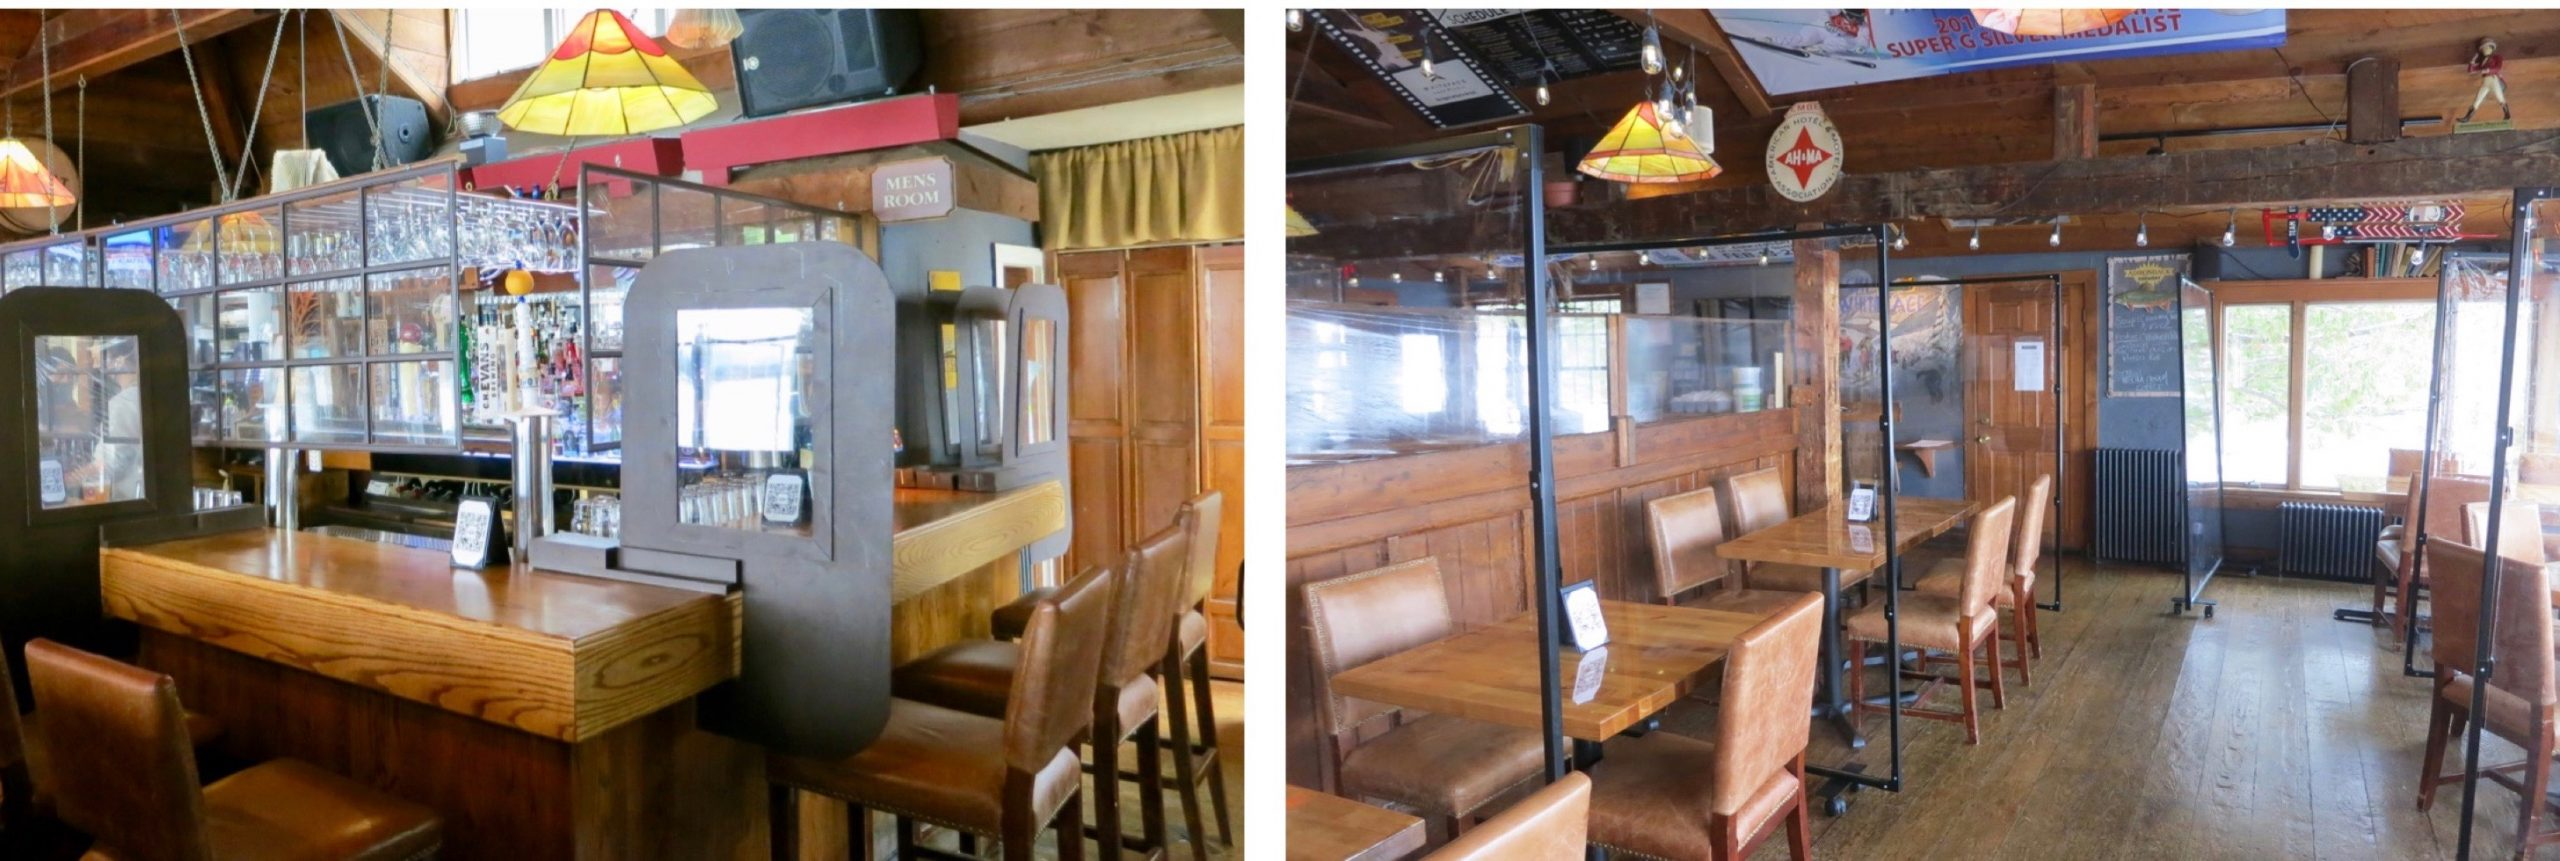 Split screen of a bar and seating area with plexiglass barriers at the Cottage Cafe